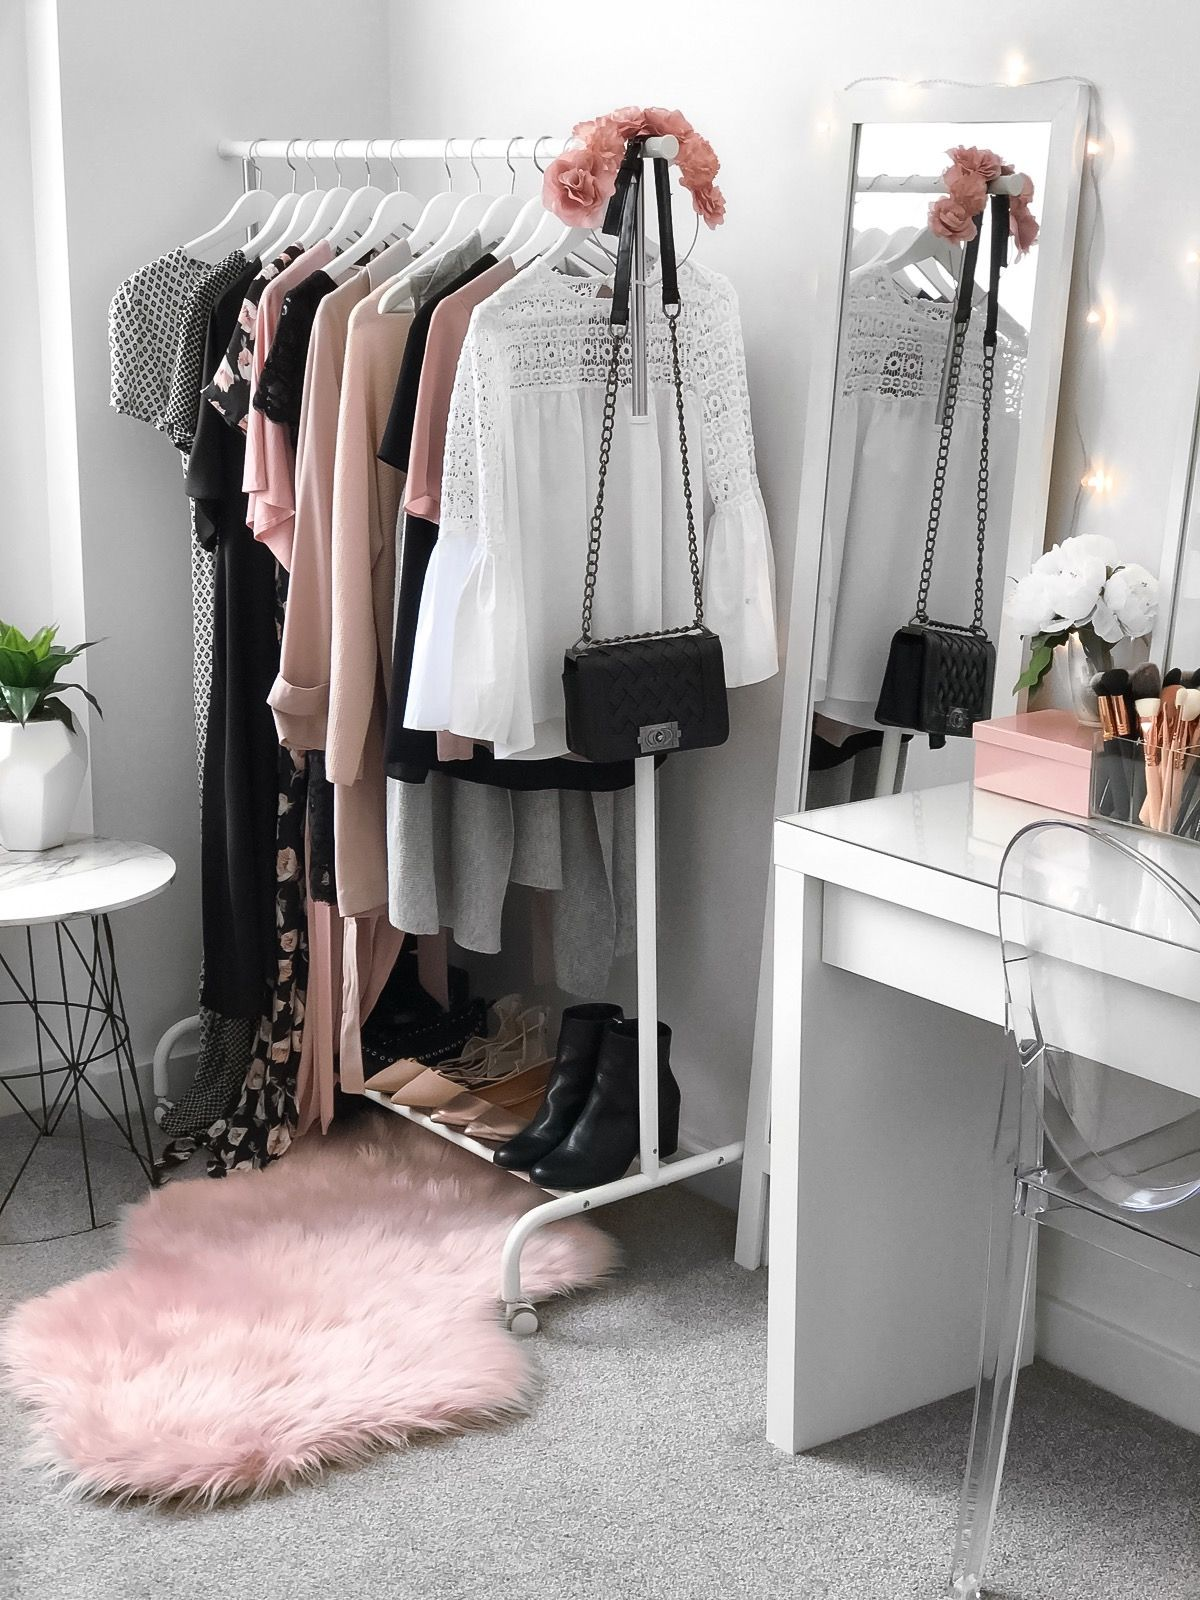 wardrobe beauty room makeup vanity from ikea malm dressing table target pink marble accent chair kmart rug clothing rack side jcpenney rugs clearance ashley furniture signature